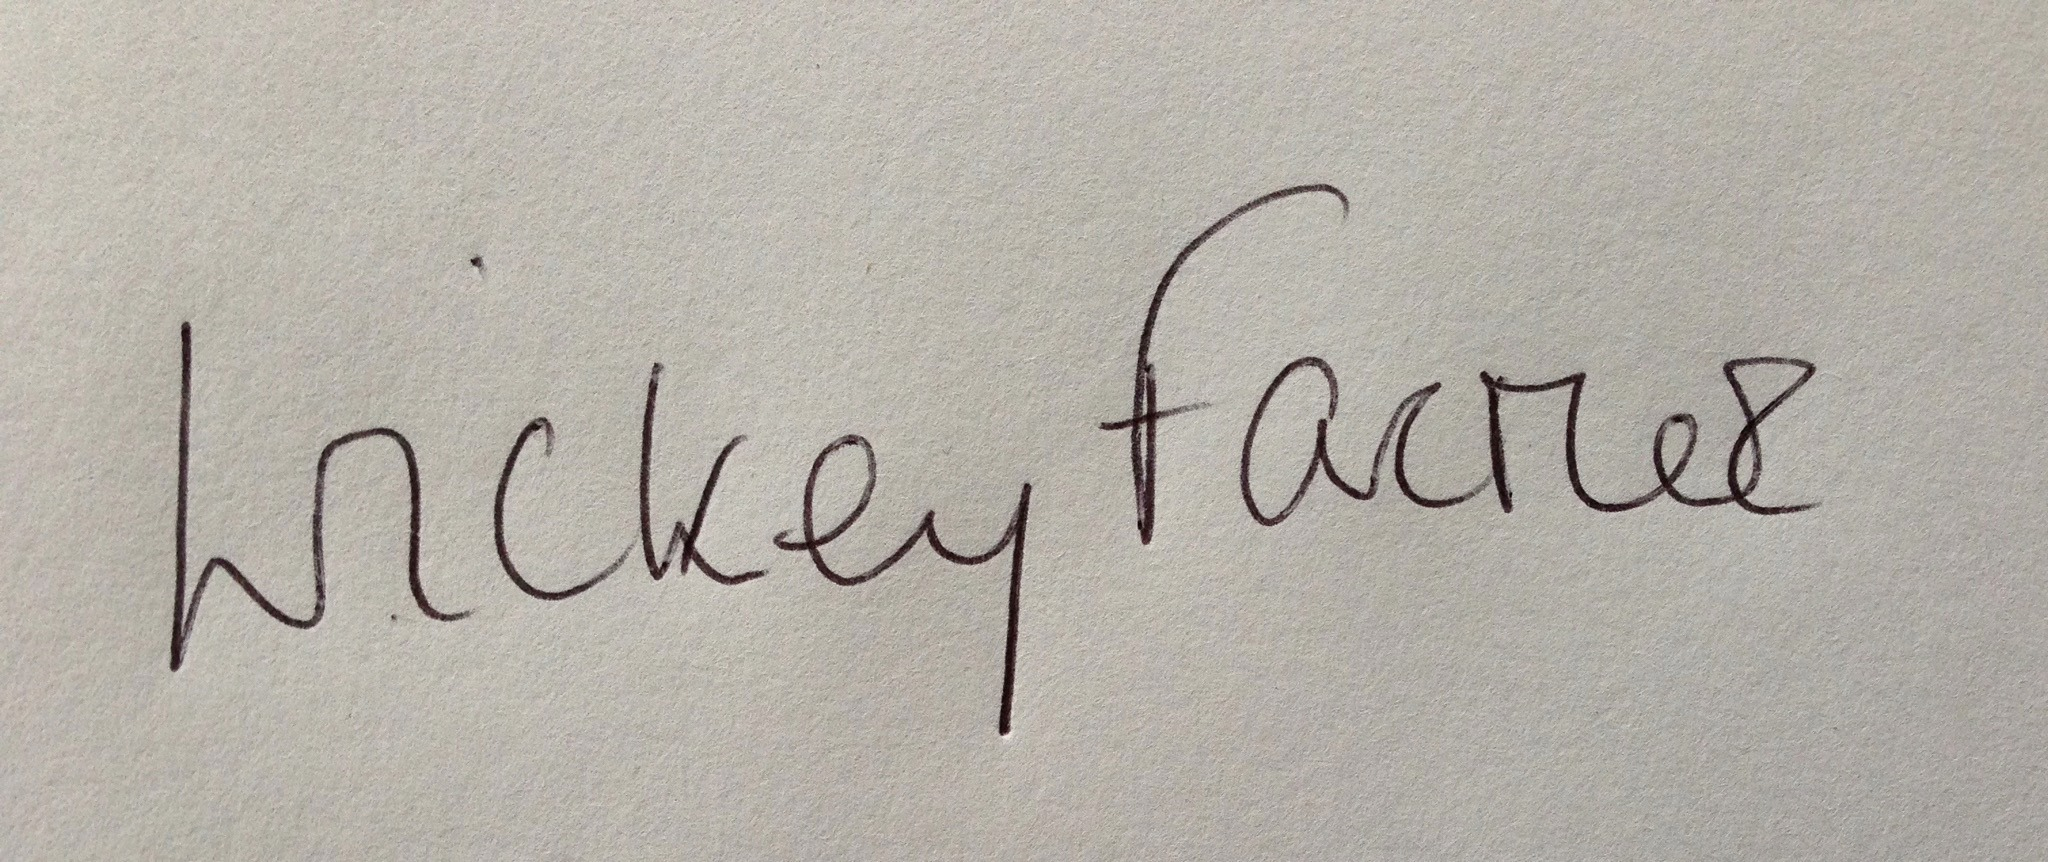 Wickey Farmer Signature